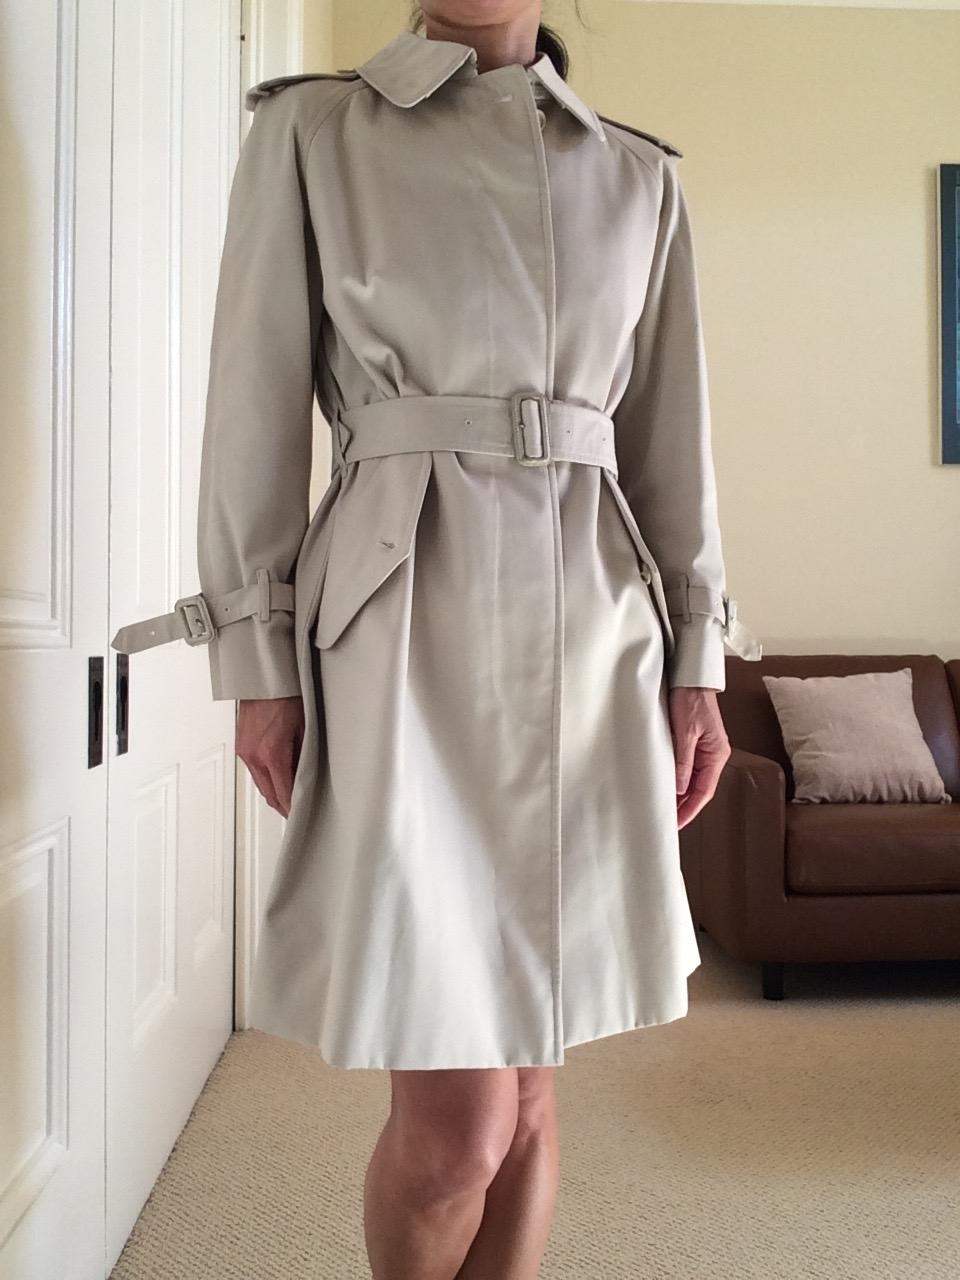 uk Classic Trench co Best Cleverink Coat Burberry FY0qaZwA